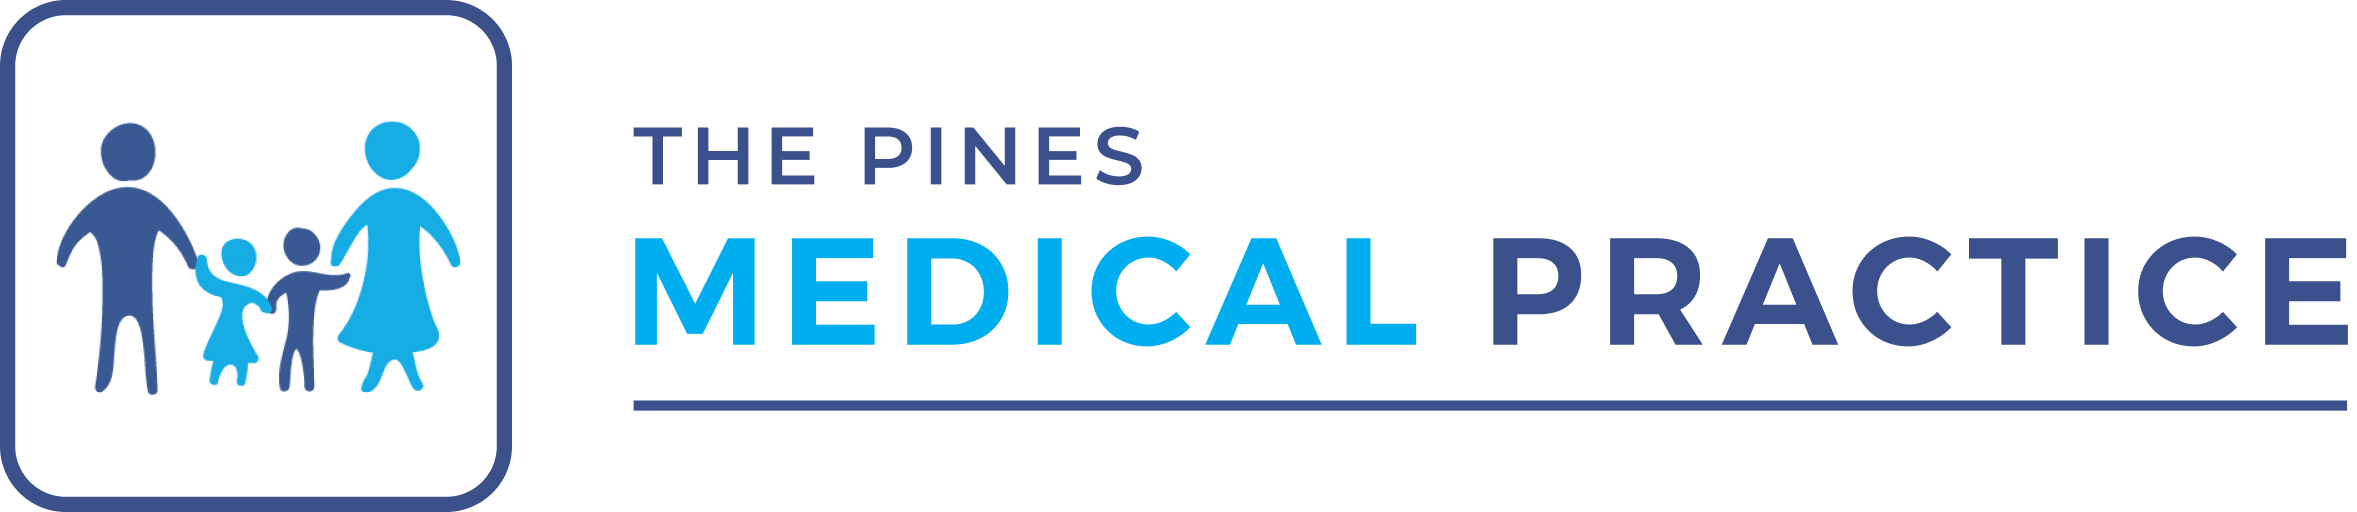 The Pines Medical Practice